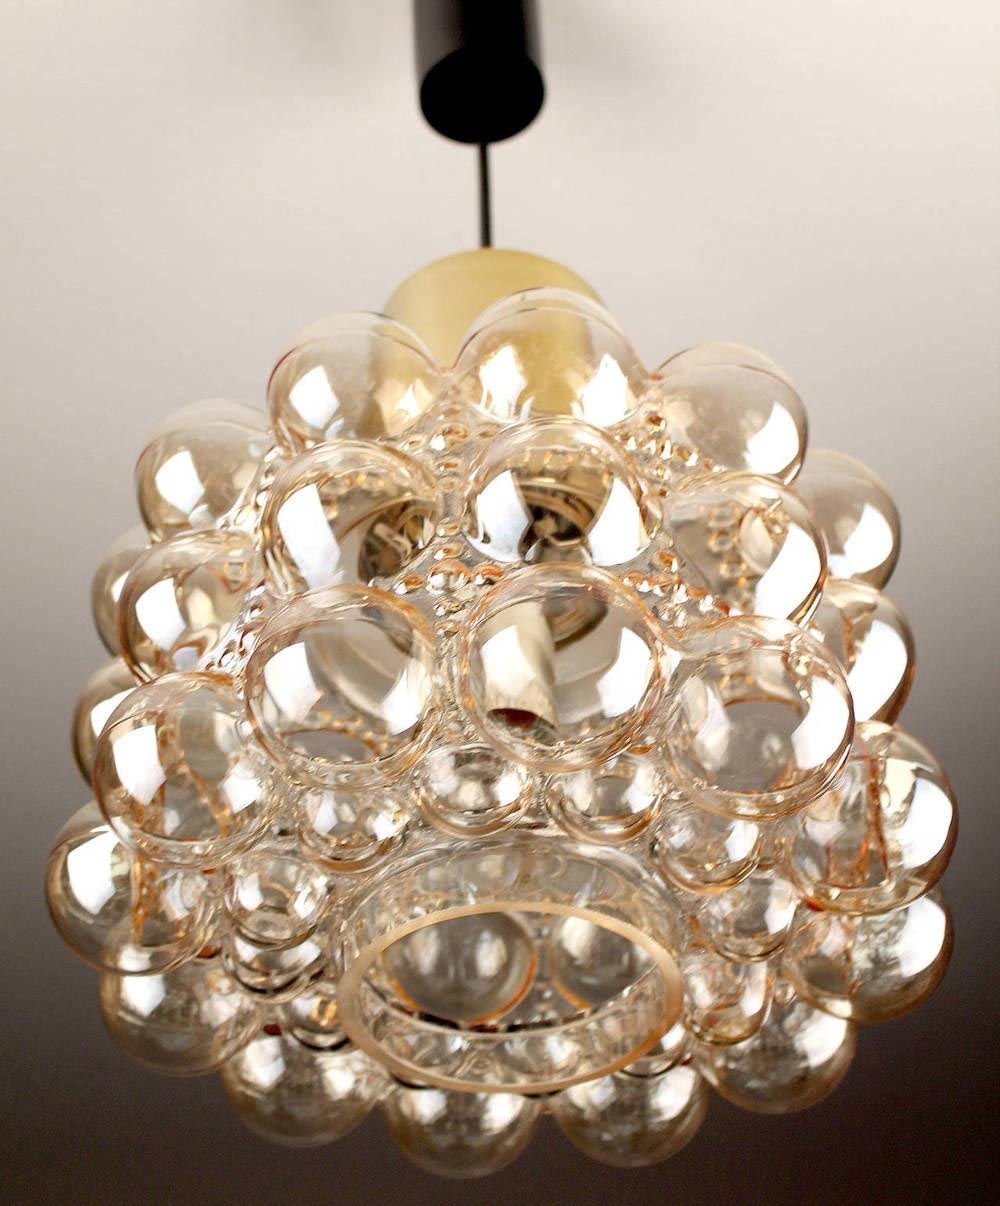 Murano glass bubble chandelier chandeliers pinterest murano murano glass bubble chandelier aloadofball Images